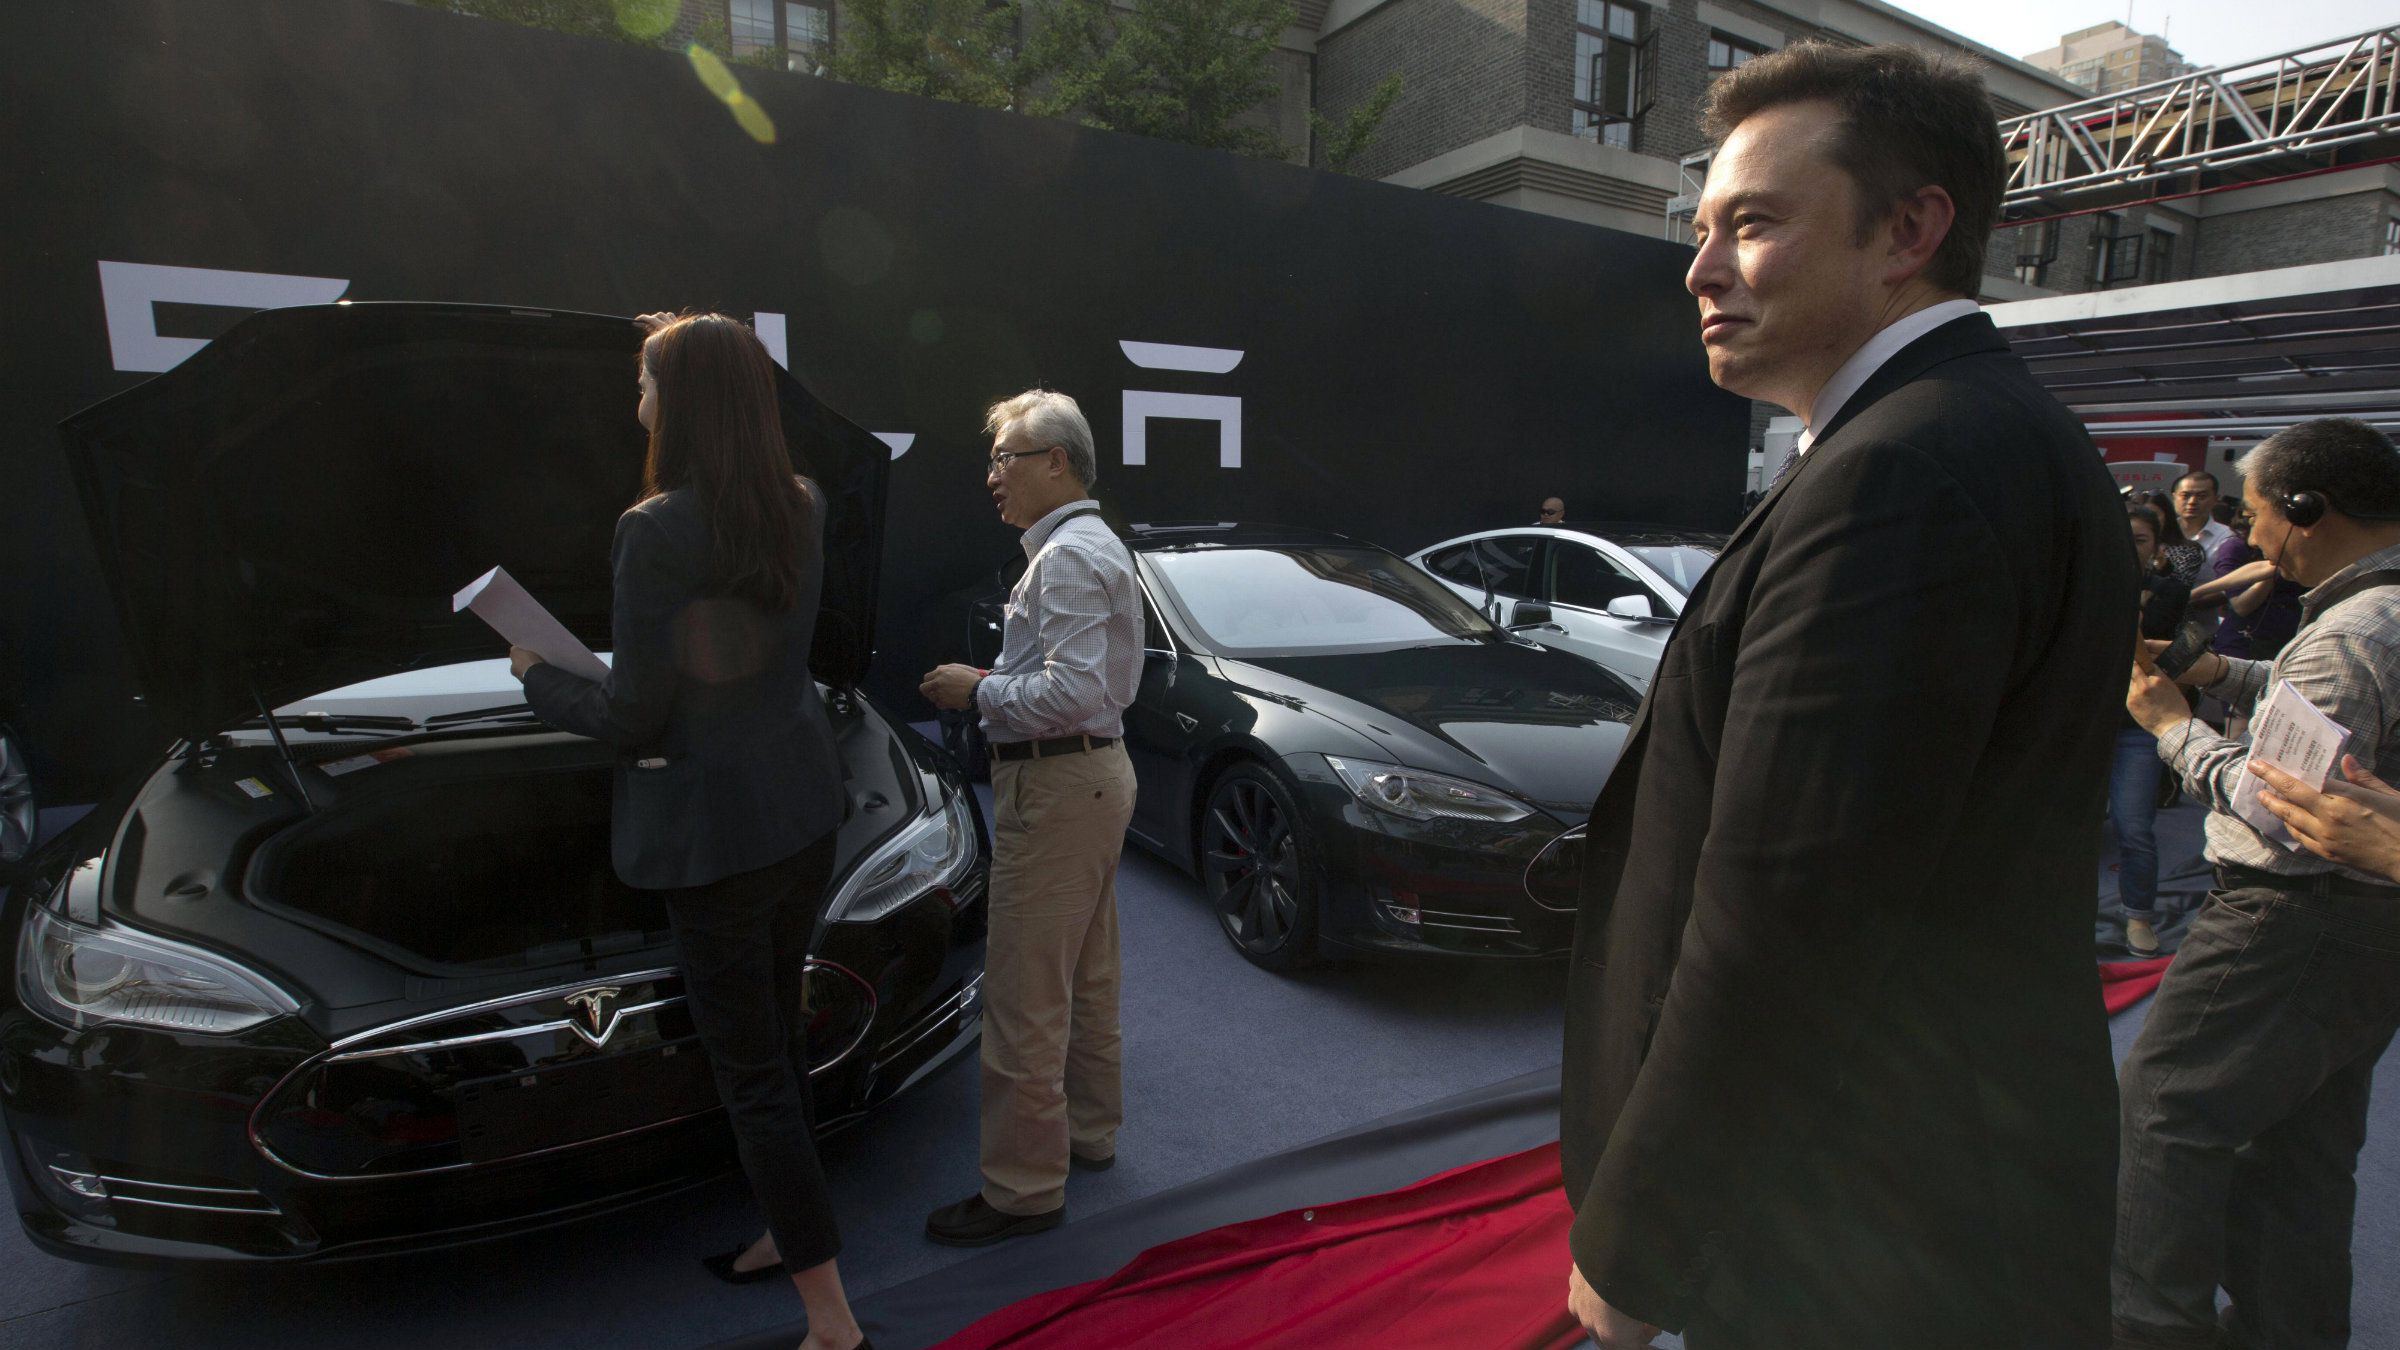 Tesla Motors CEO Elon Musk, right, looks on as a set of Tesla Model S sedans are delivered to its first customers in China at an event in Beijing, China, Tuesday, April 22, 2014.